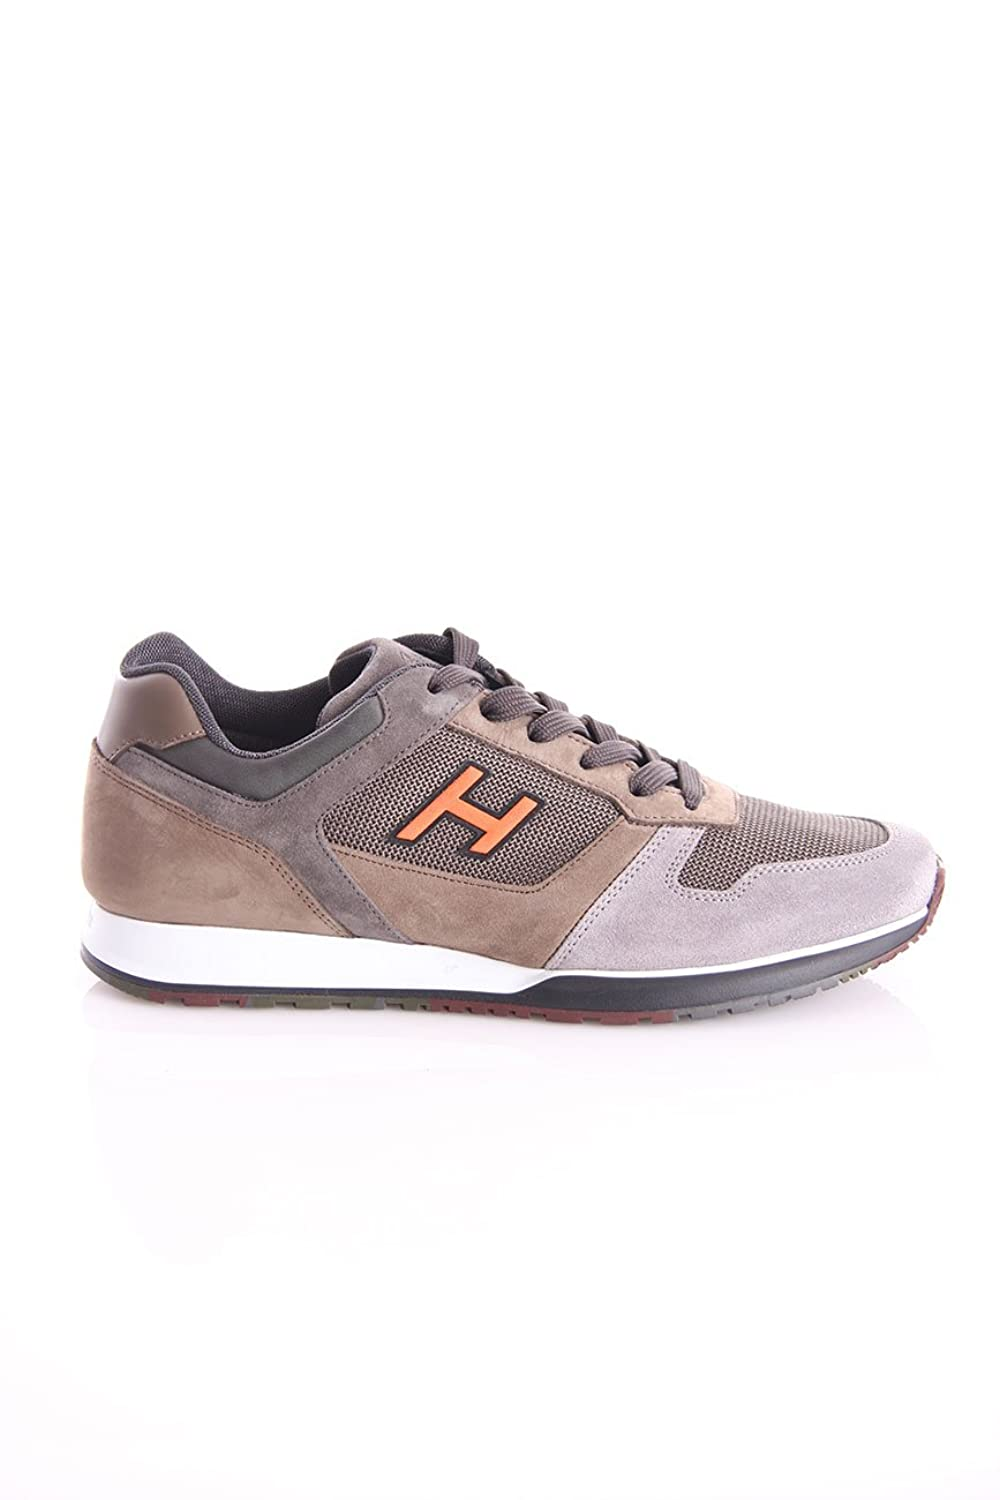 Hogan Sneakers H321 H Flock Gray and Brown, Hombre. 7,5